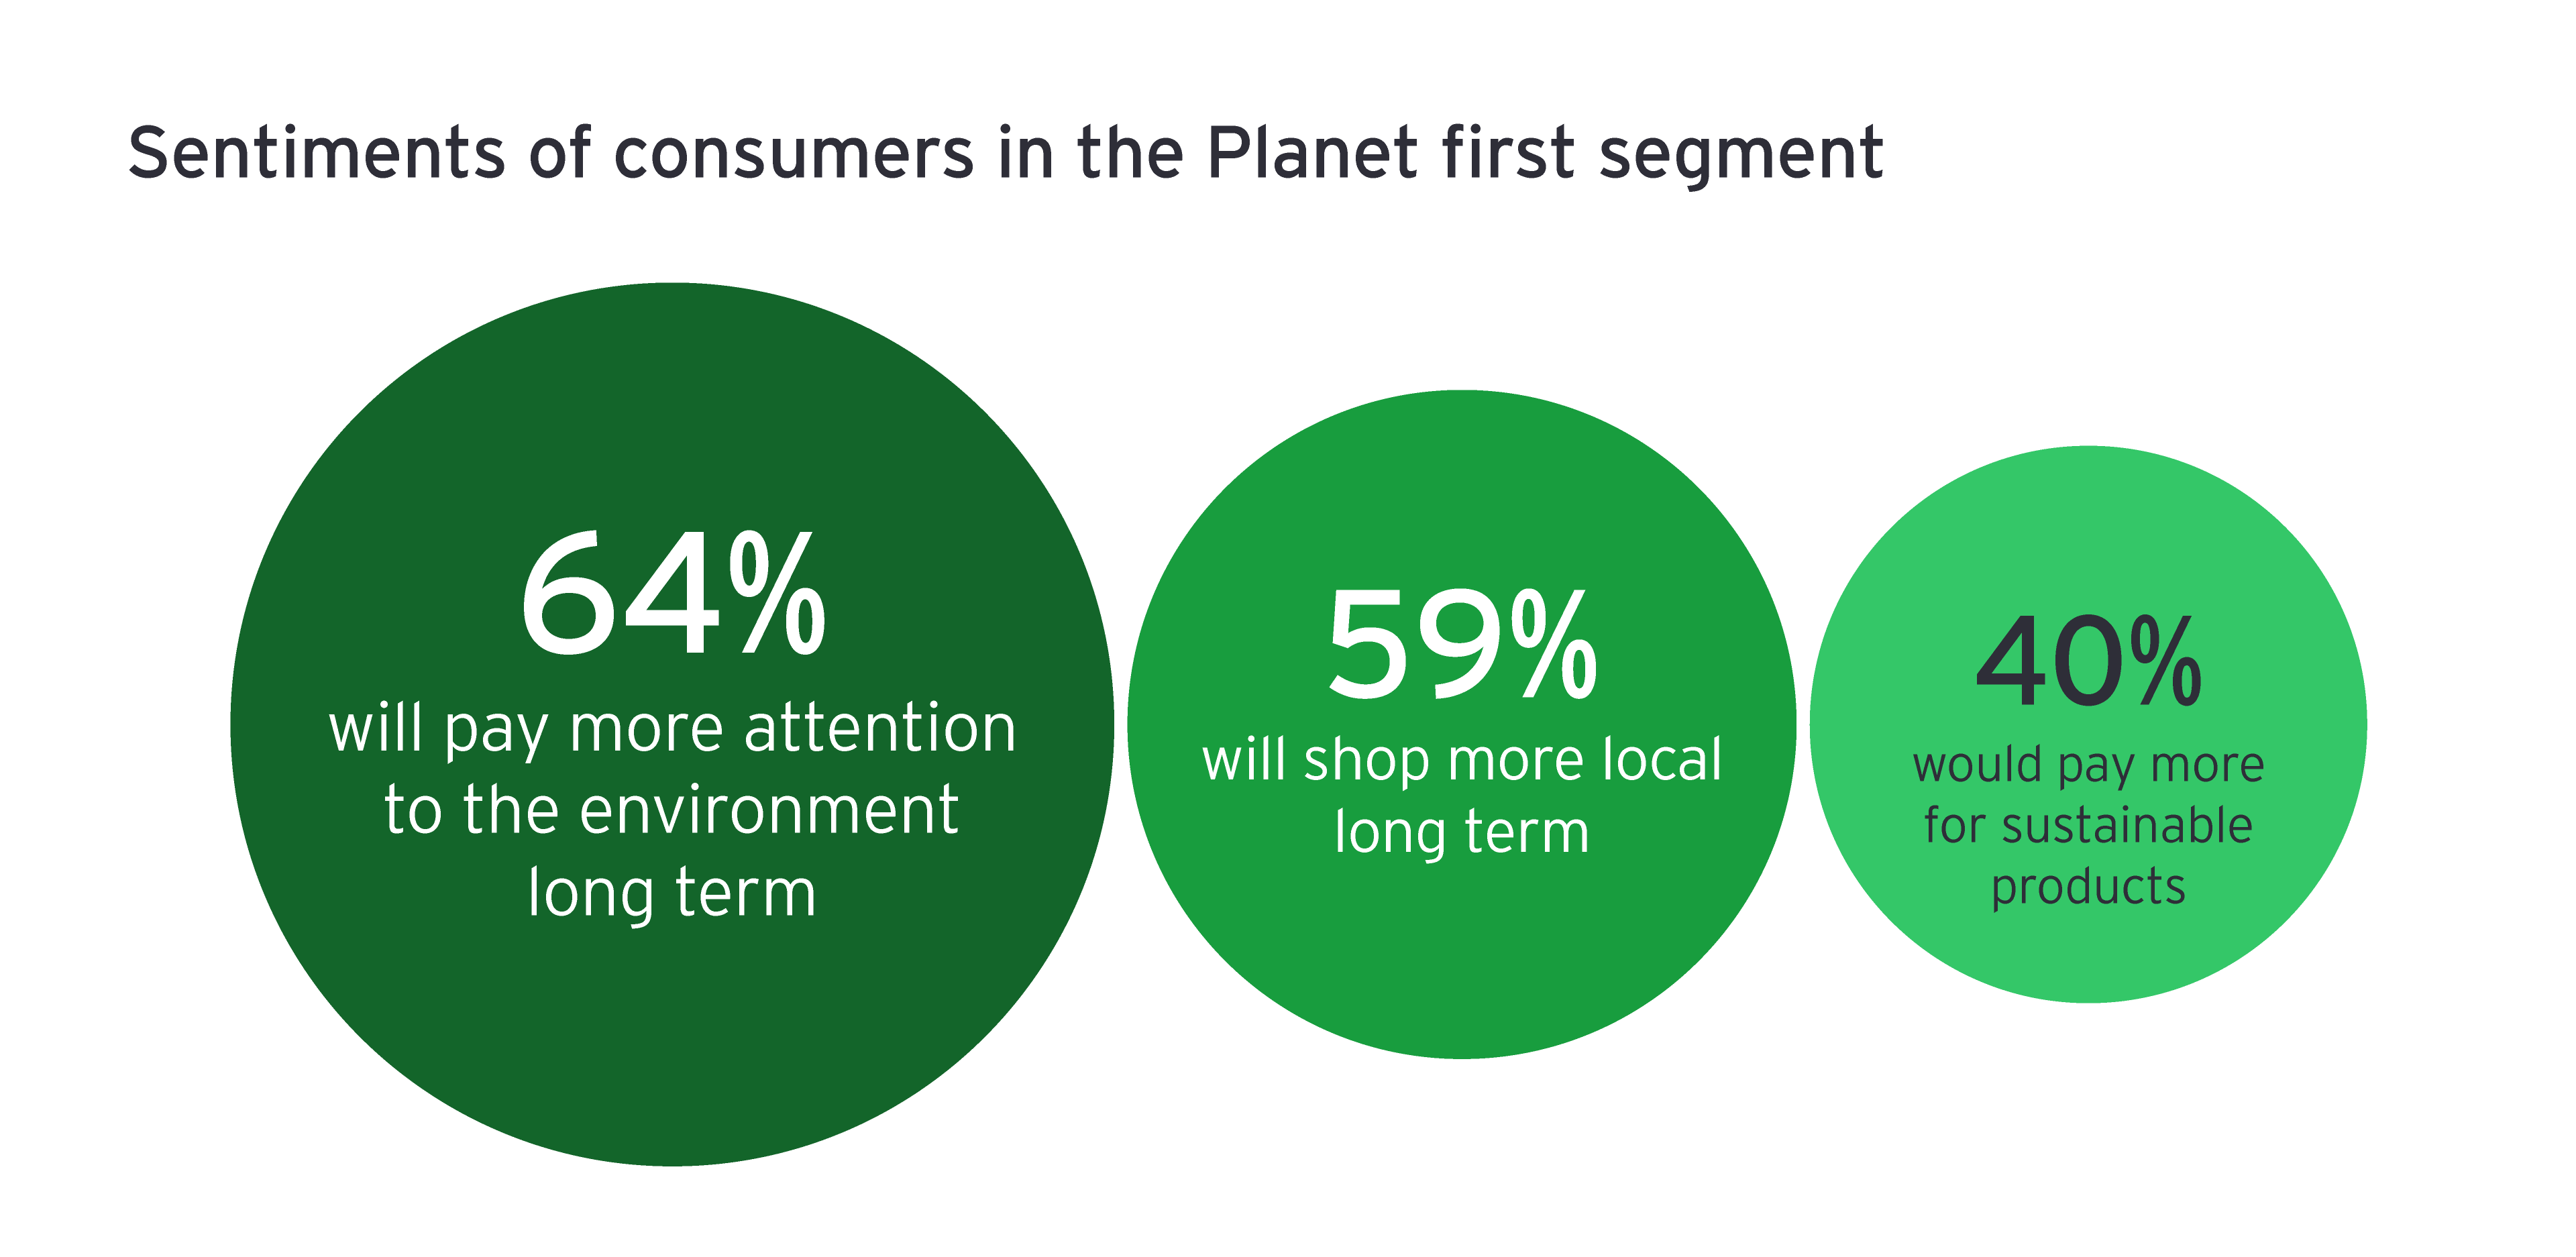 Sentiments of consumers in the Planet first segment